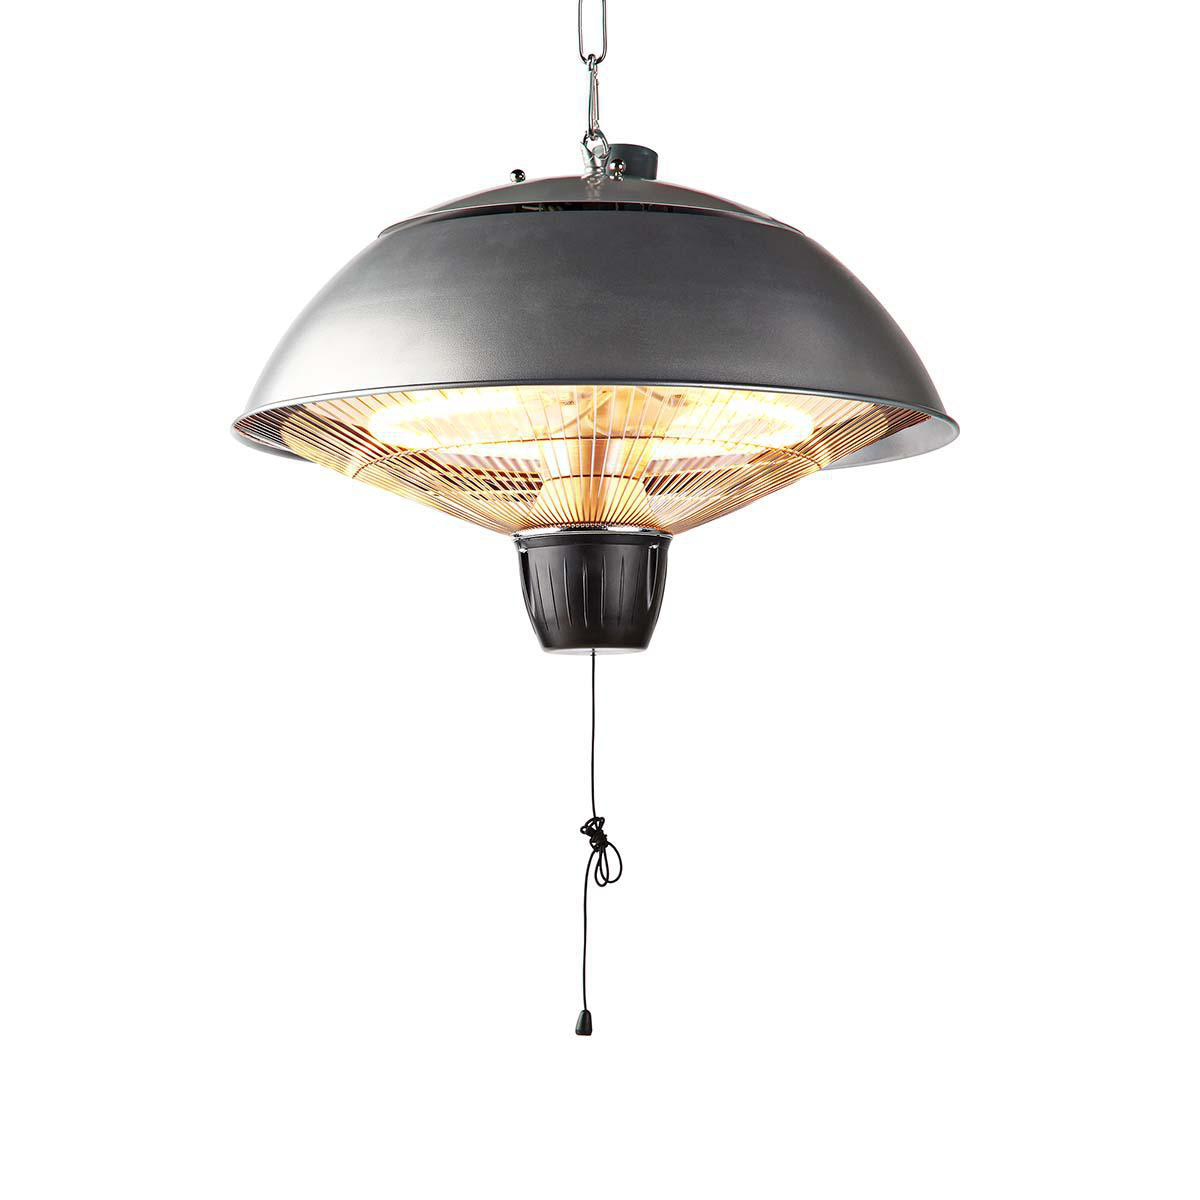 Patio Heater With Ceiling Mounting